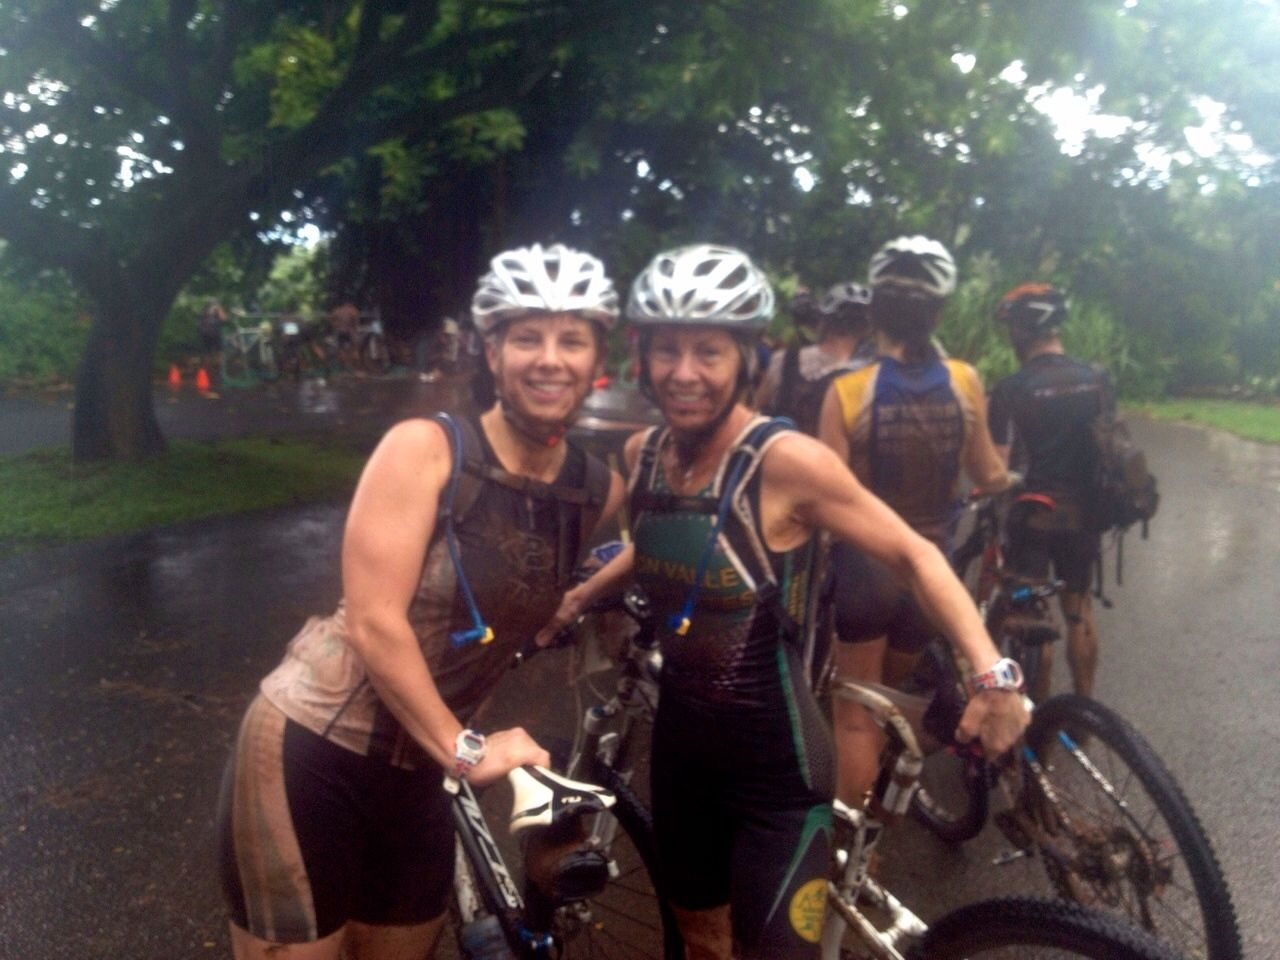 Leanne Tiley and her mum at Xterra world champs 2014